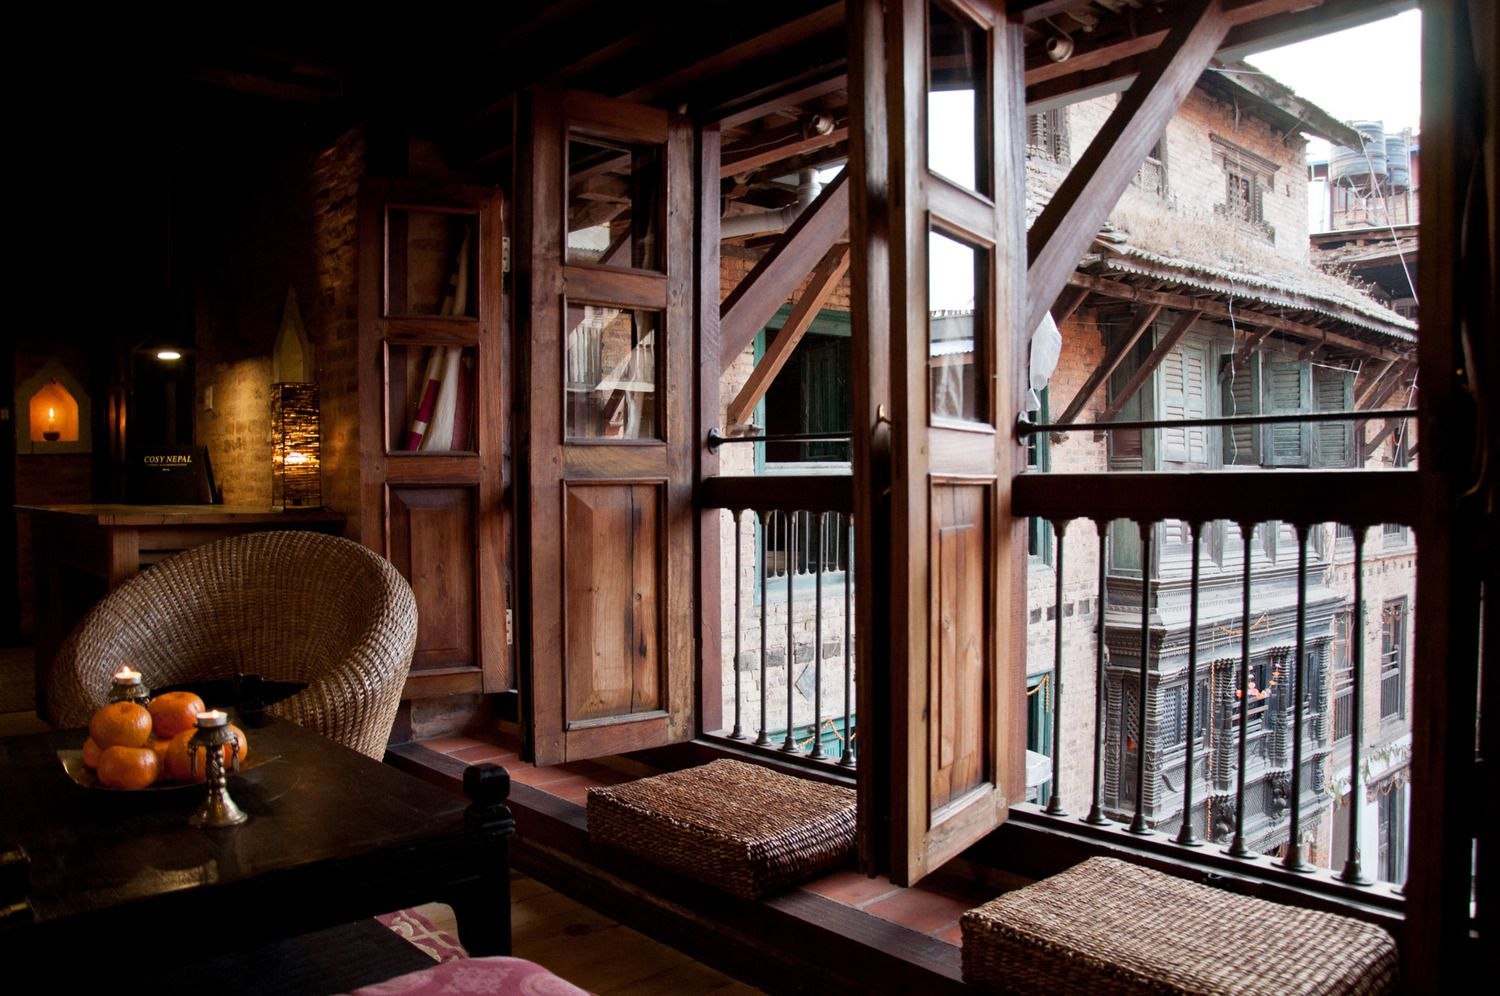 Window for the outer view of peaceful courtyard patan nepal interior architecture cosynepal also rh pinterest